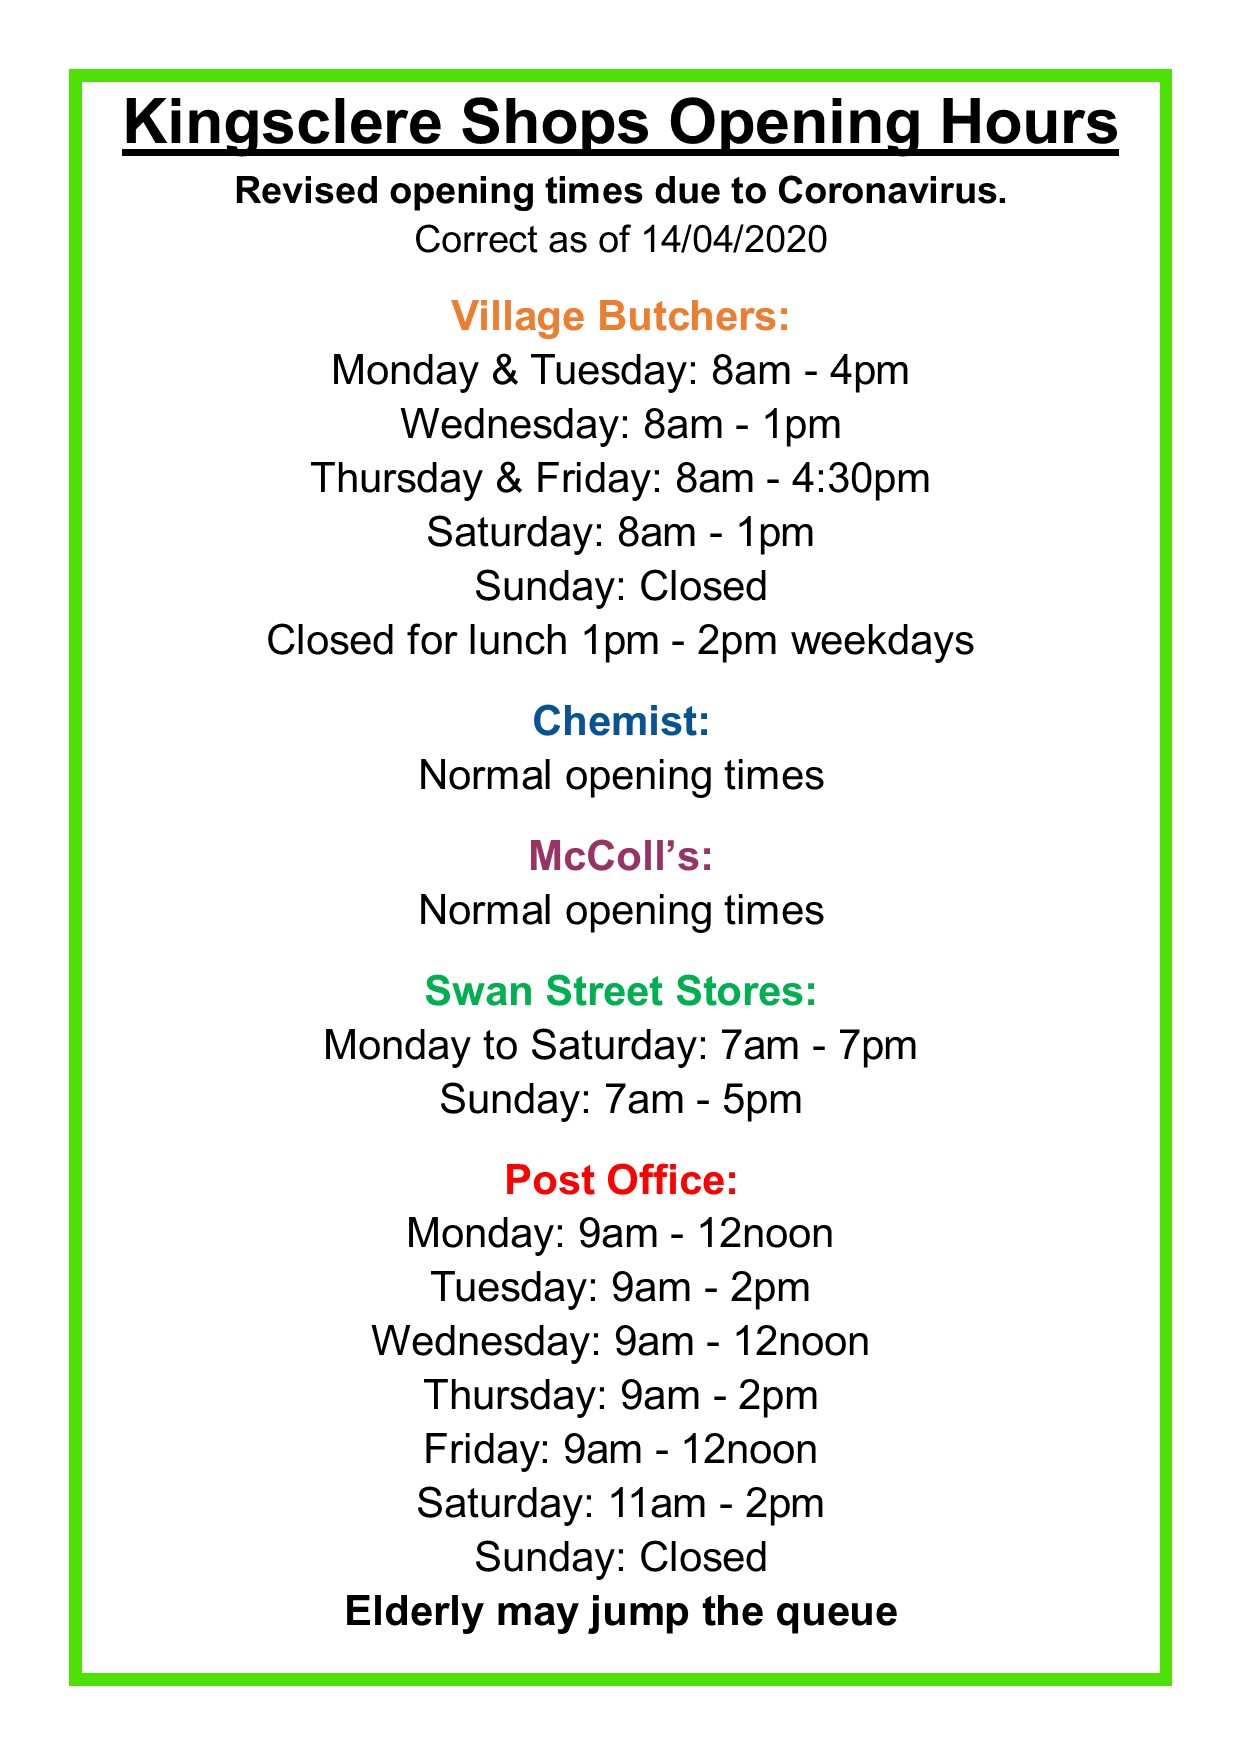 Kingsclere Shops Opening Hours